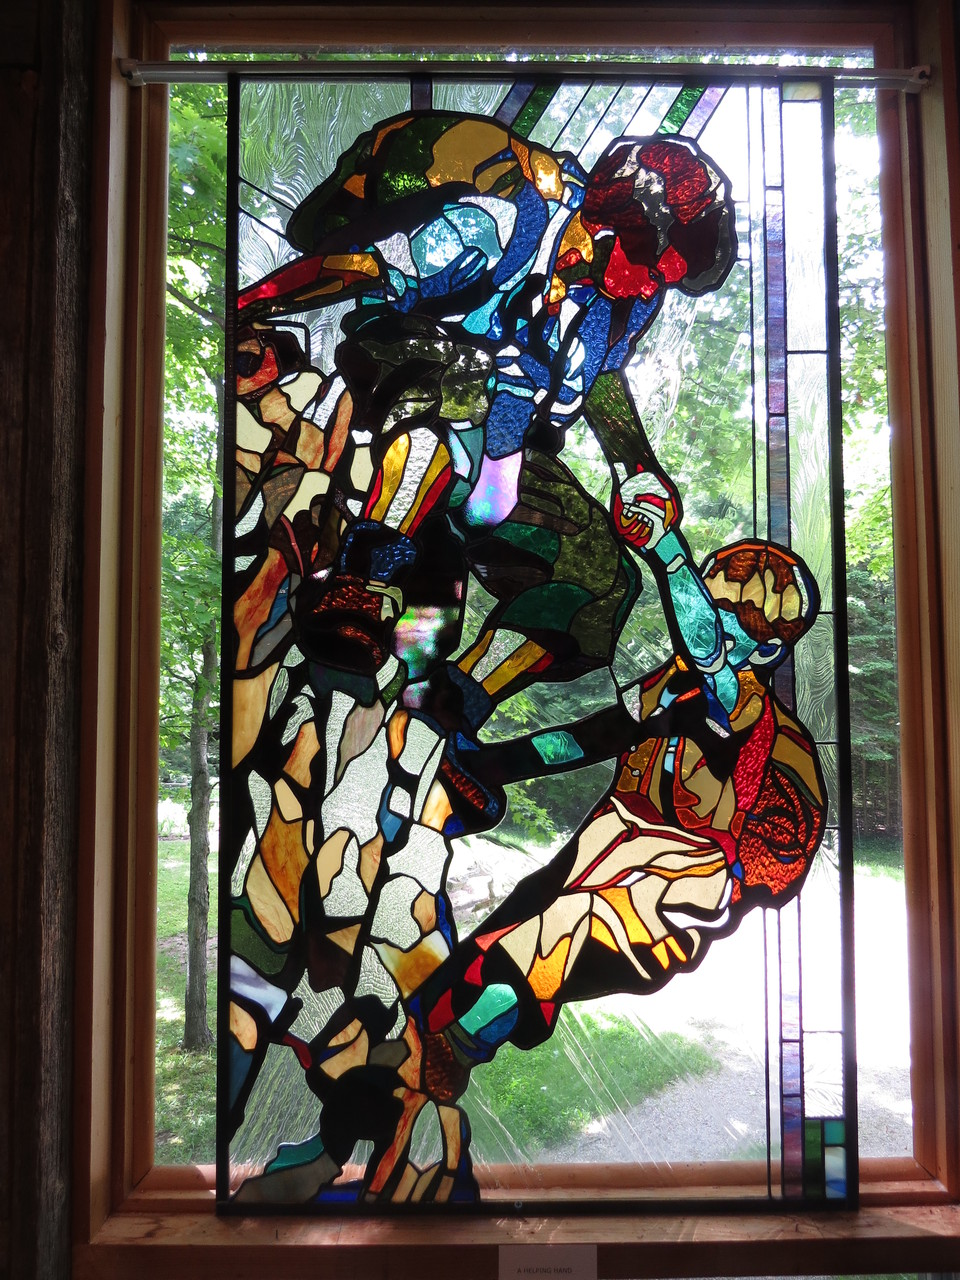 HELPING HAND 24 x 44 inches stained glass, photo by Lloyd Howell